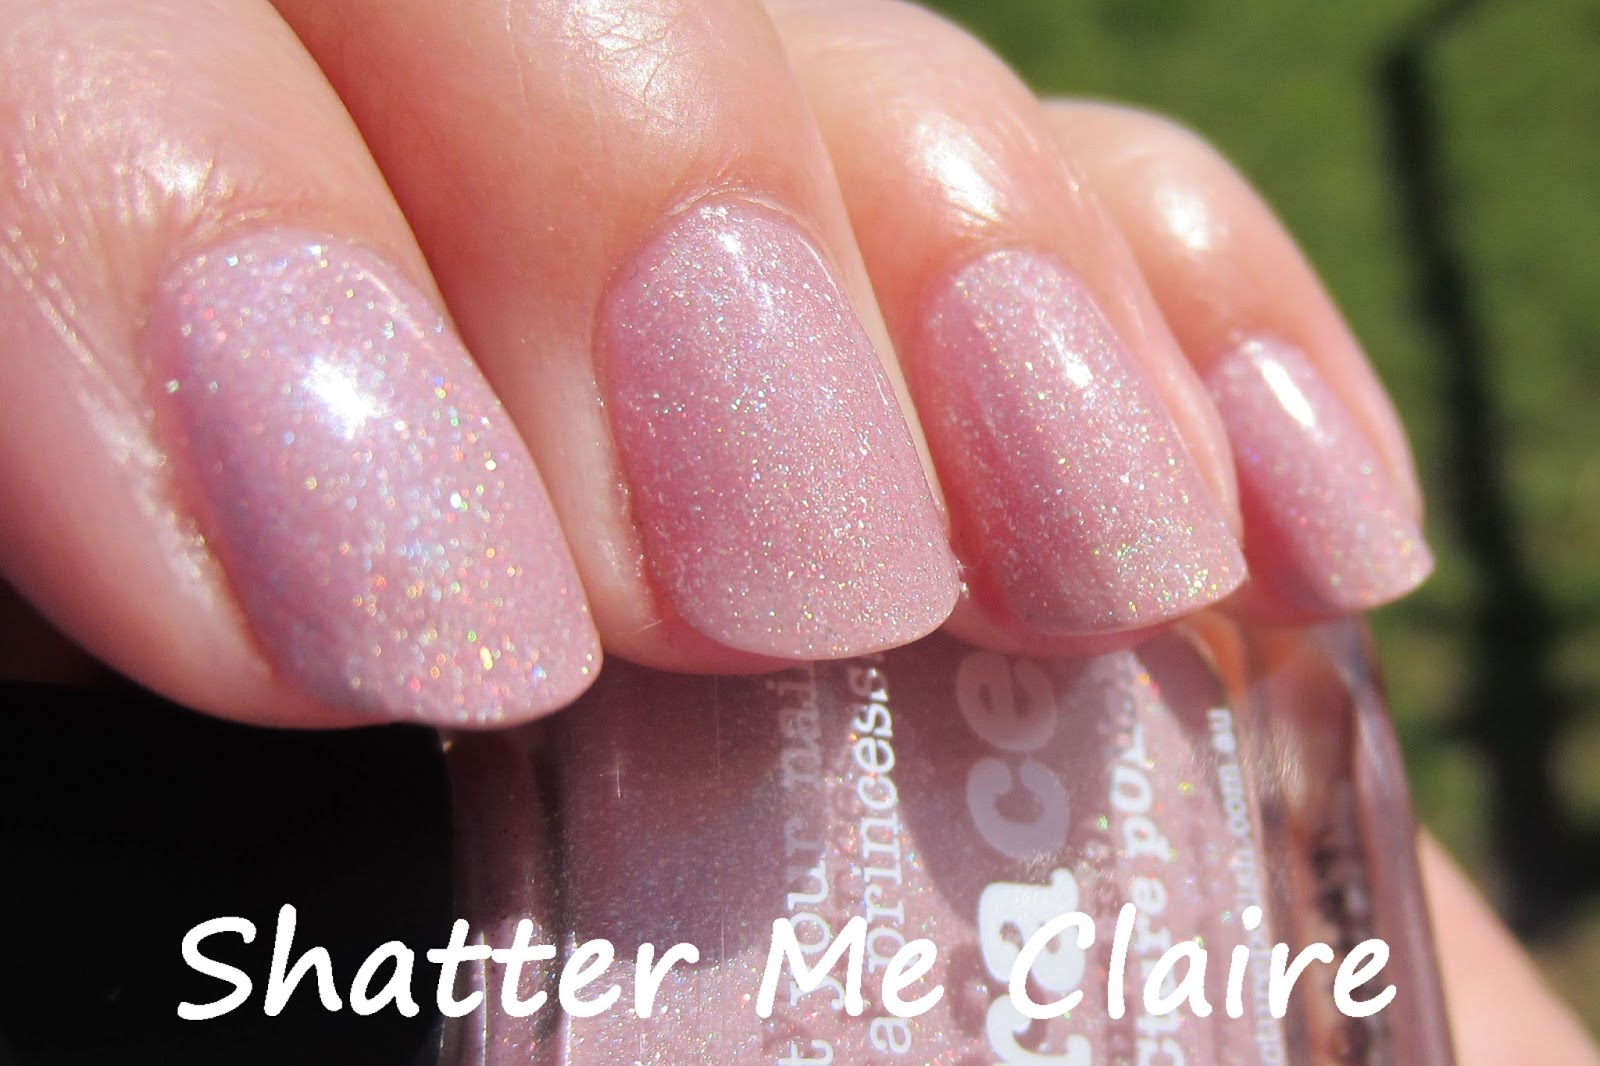 Shatter me Claire